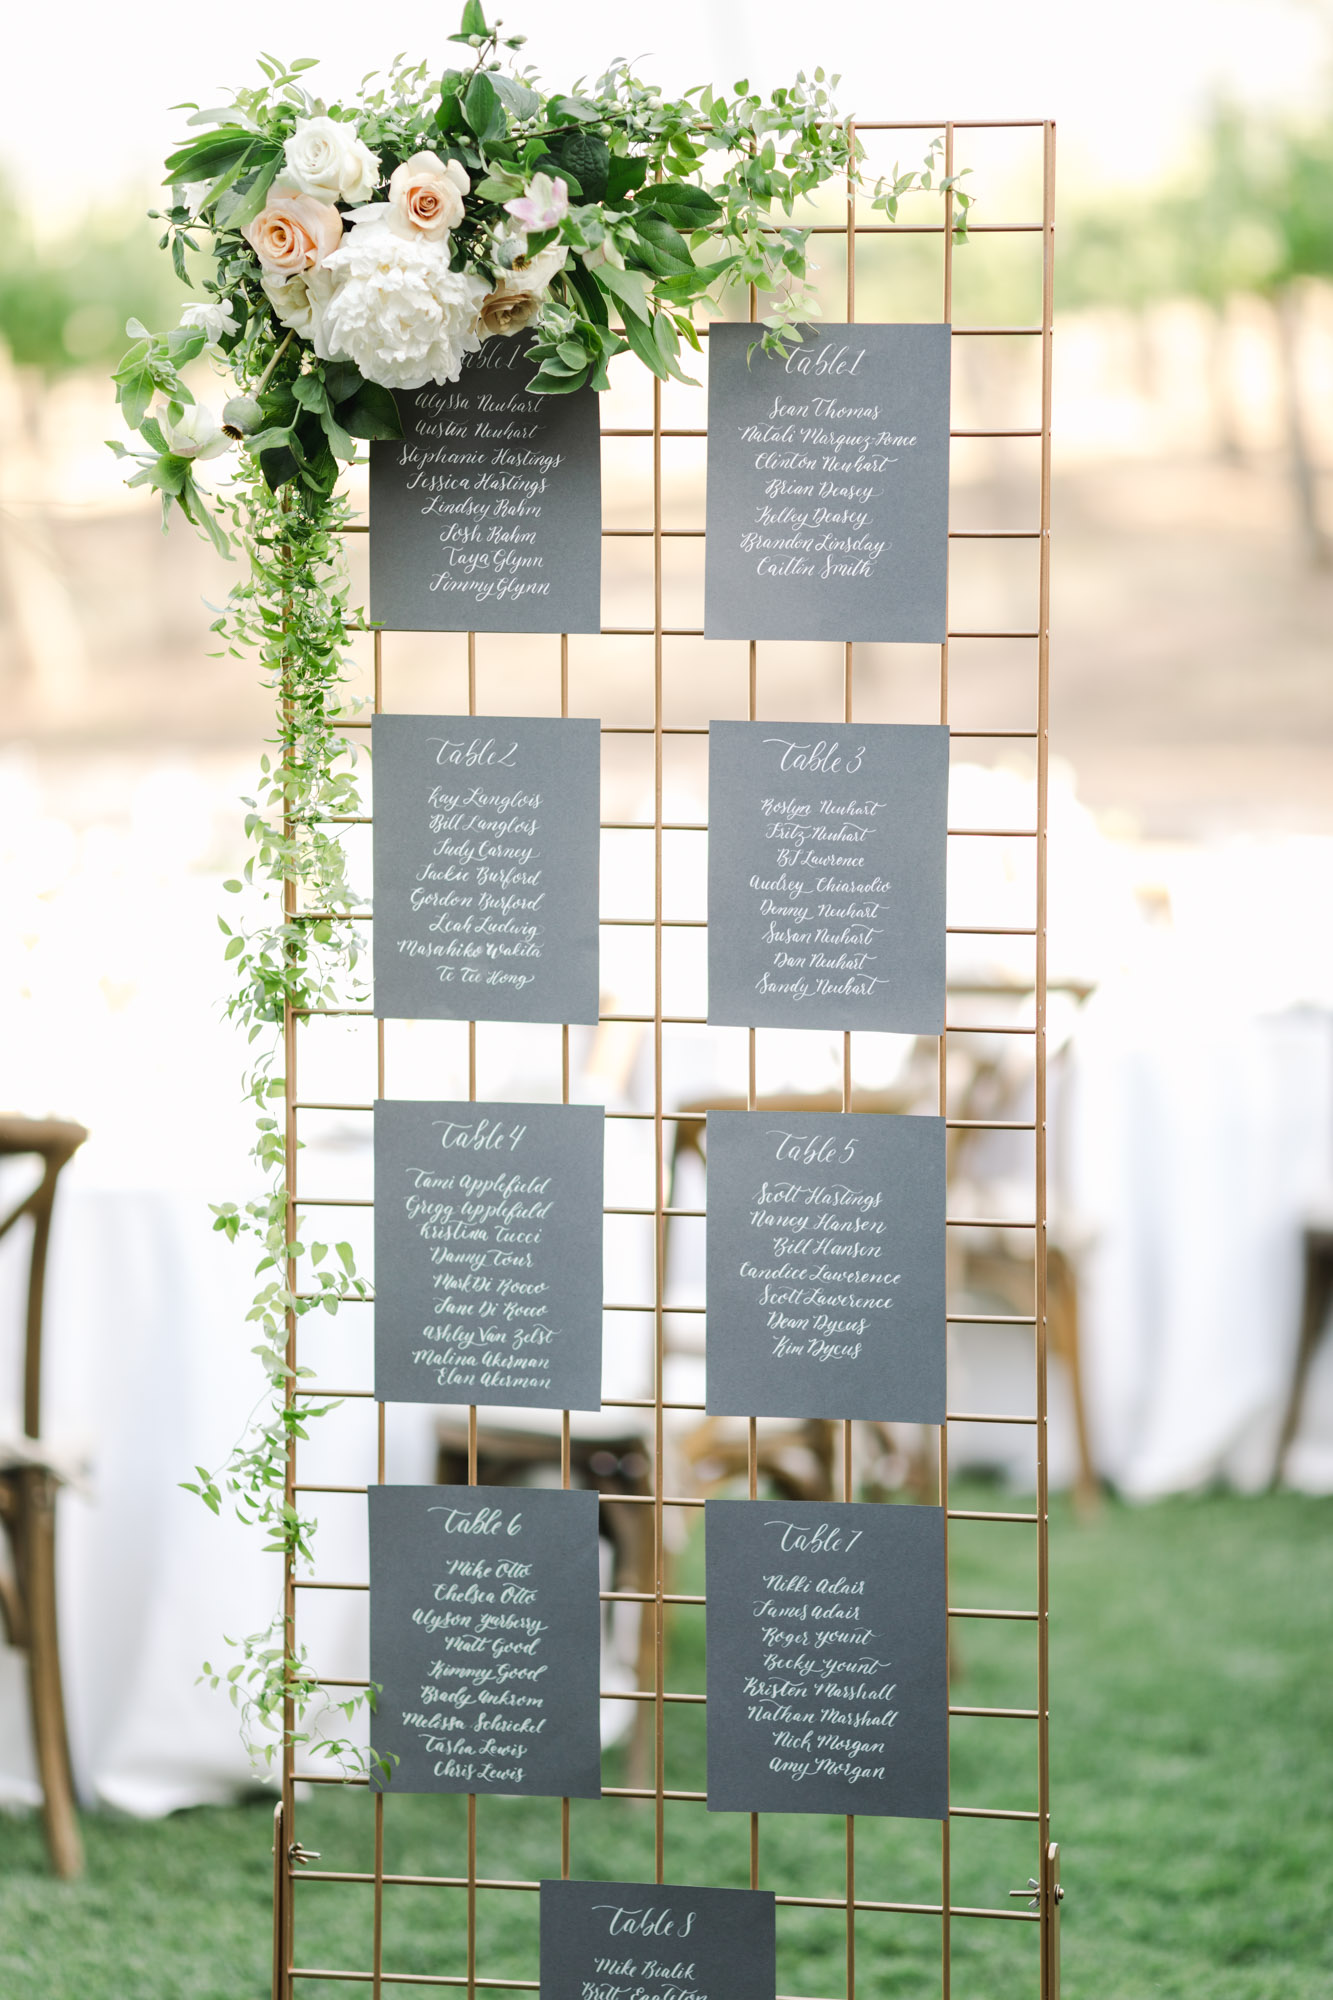 This is a gold grate seating chart rental, it is 2ft x 6ft and can be assembled to stand. this seating chart works best for guest counts under 100.